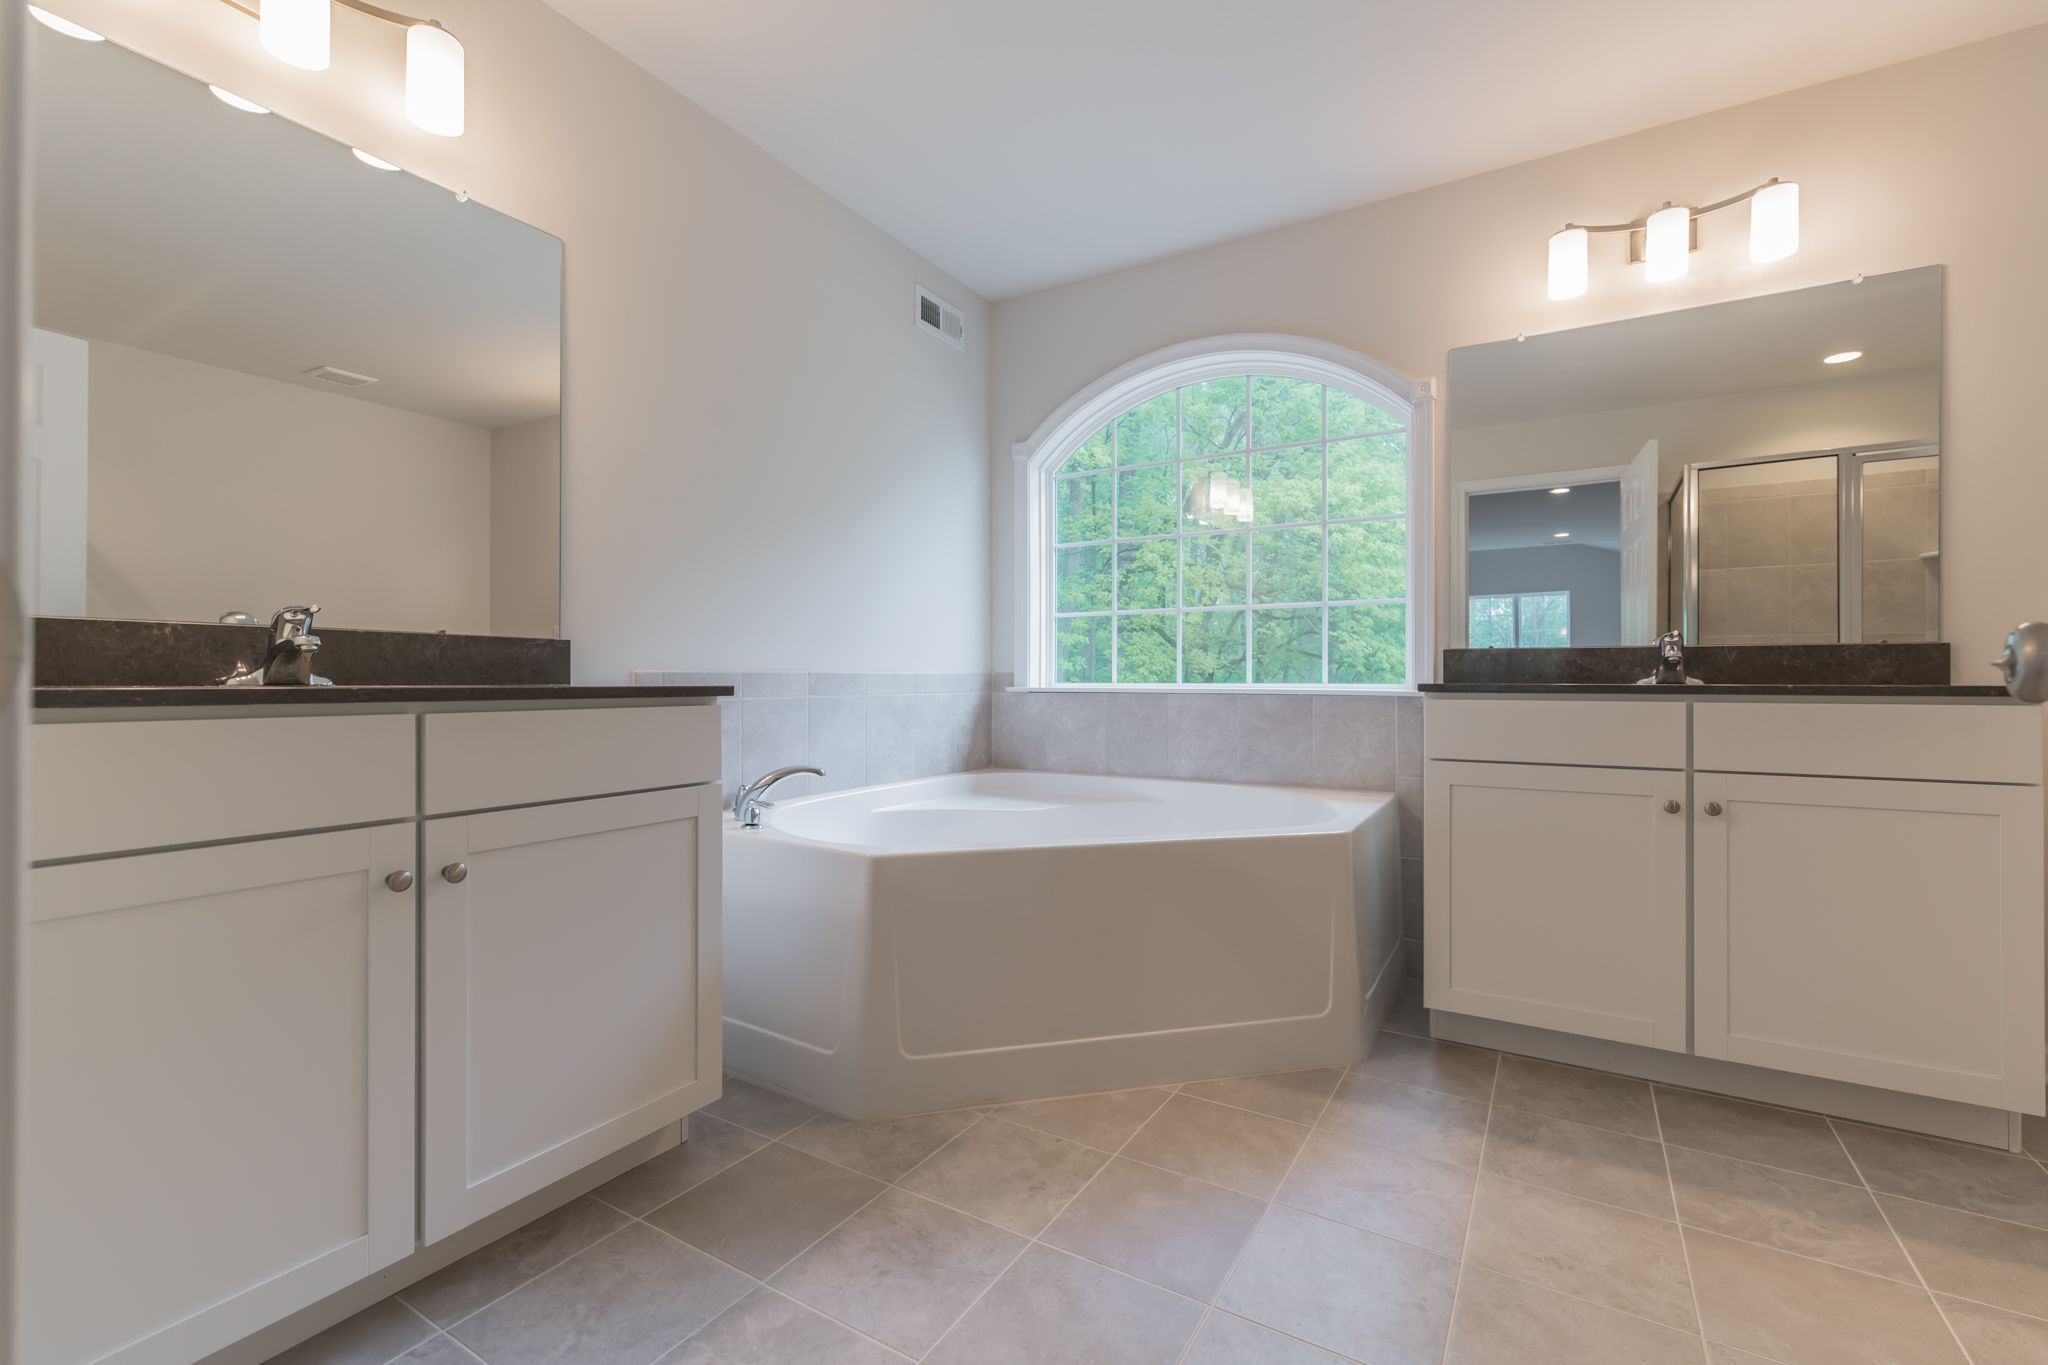 Bathroom featured in the Hawthorne By Rouse Chamberlin Homes in Philadelphia, PA